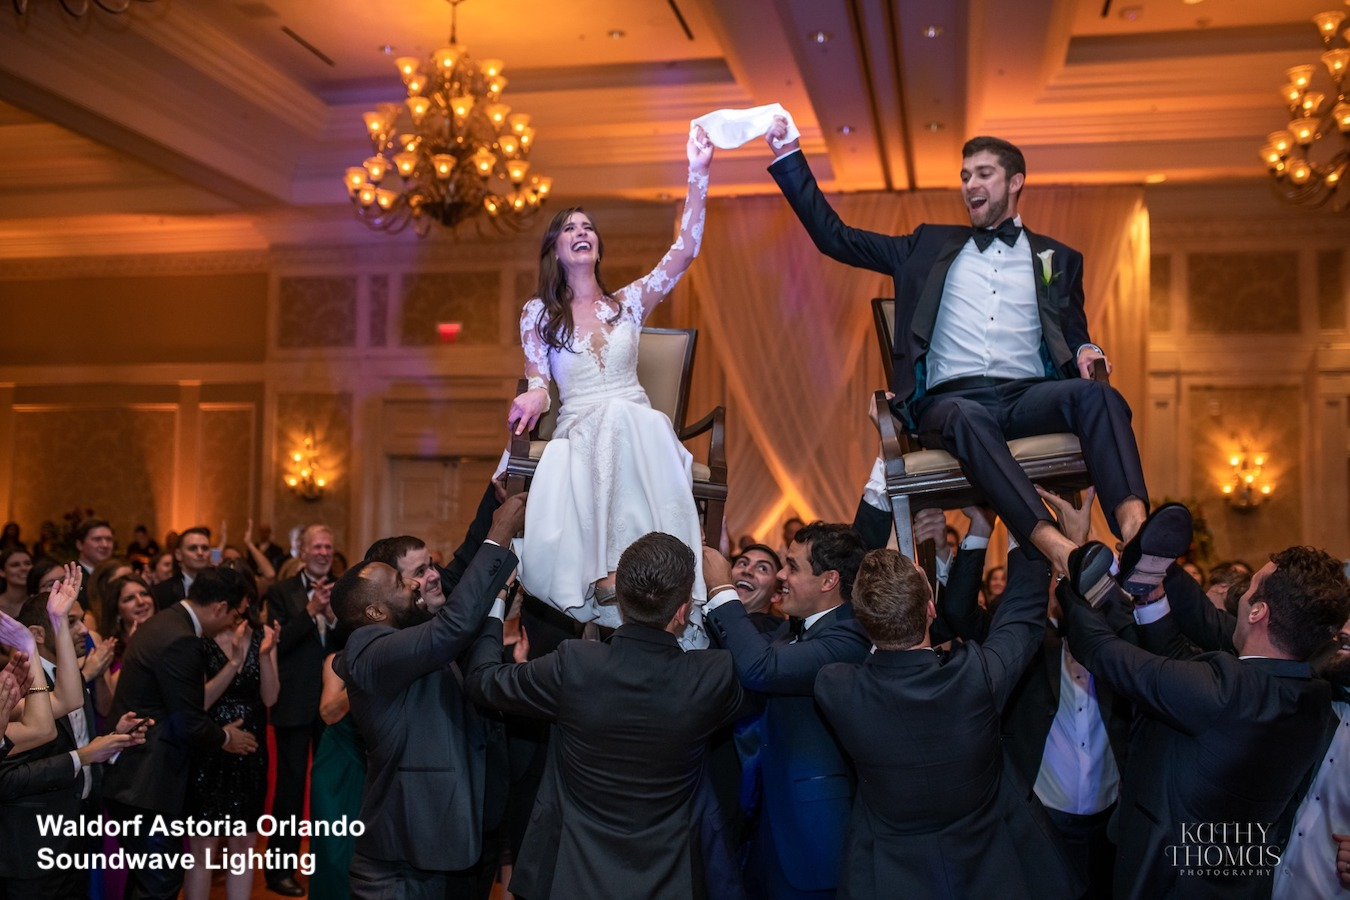 waldorf astoria - orlando wedding venue - soundwave entertainment - soundwave DJ